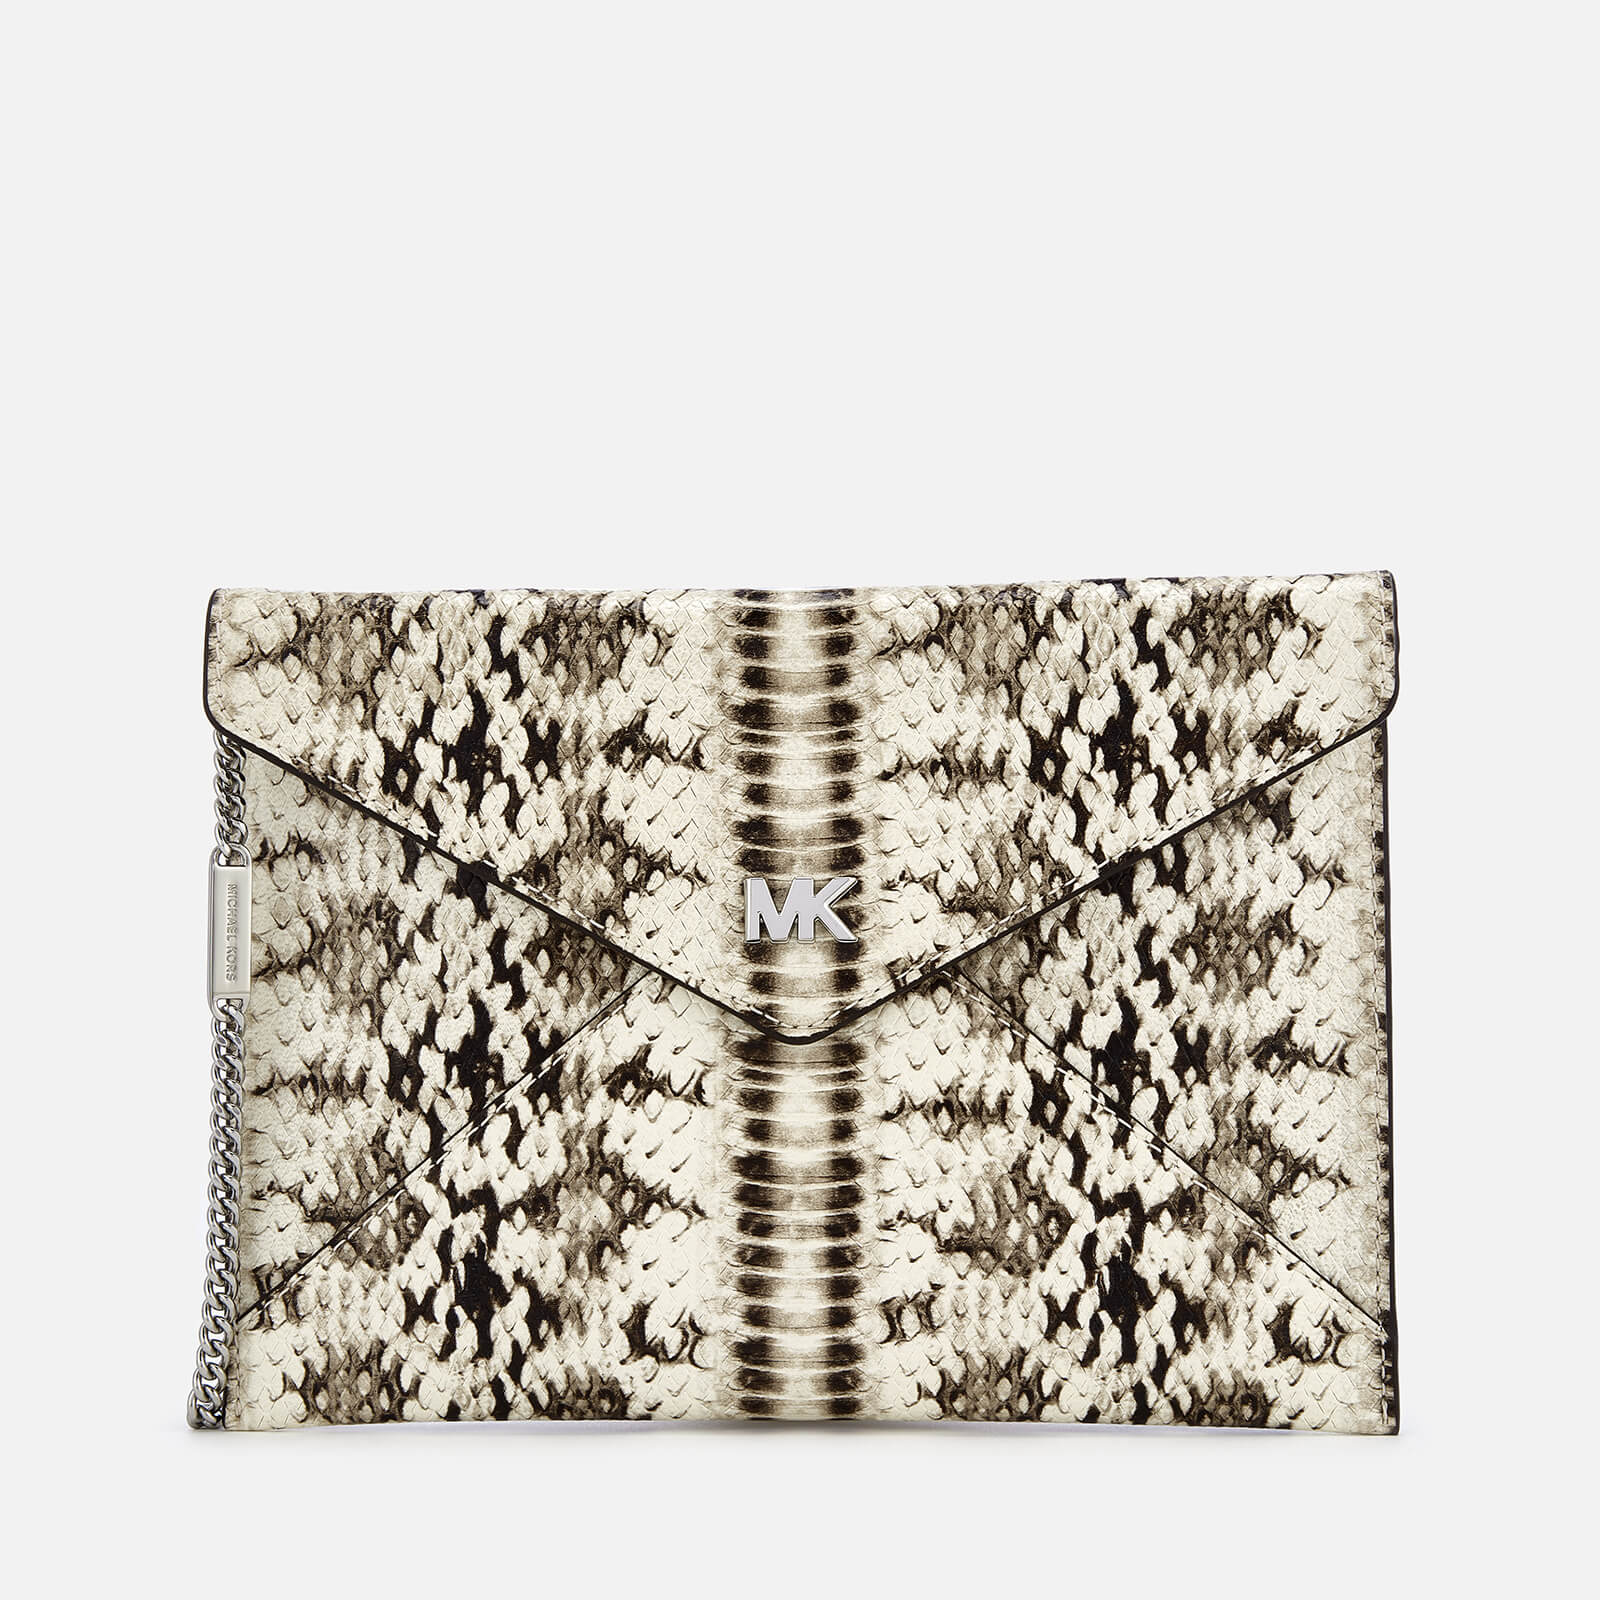 090008038c2a MICHAEL MICHAEL KORS Women s Snakeskin Envelope Clutch Bag - Natural - Free  UK Delivery over £50